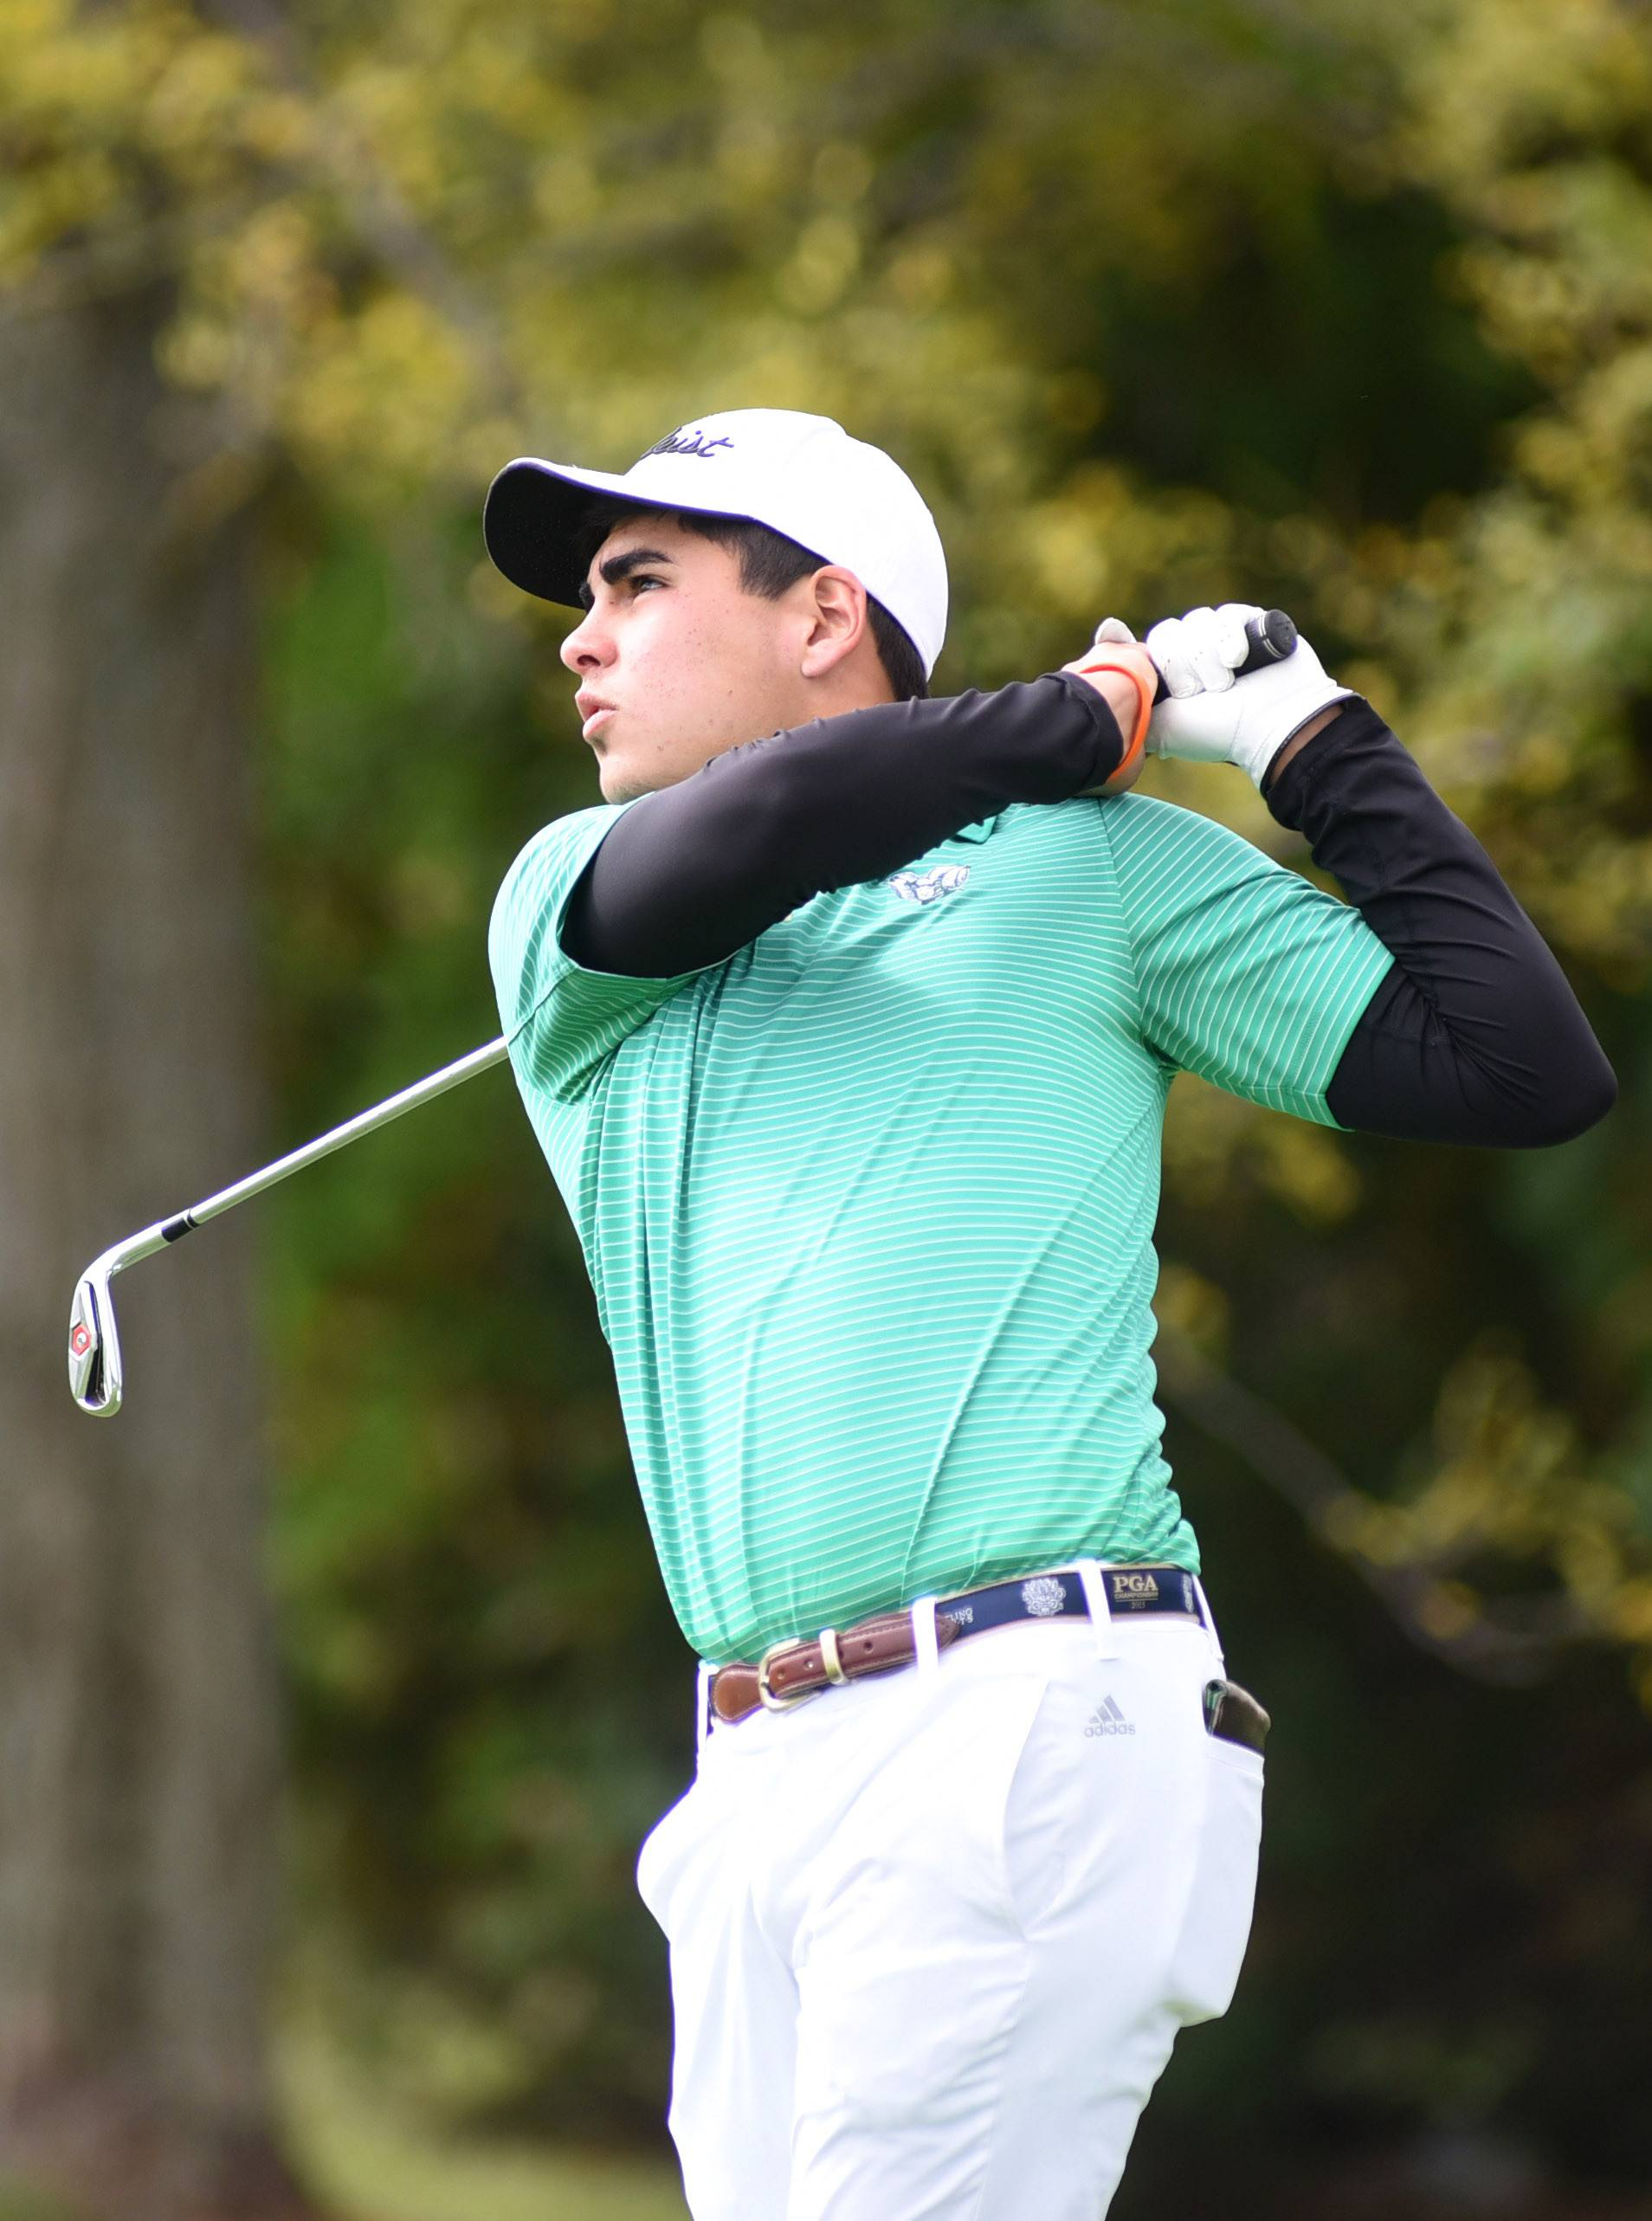 Grayslake Central's Kyle Reynolds tees off at the 15th hole at the Fox Valley Conference in Crystal Lake last fall.